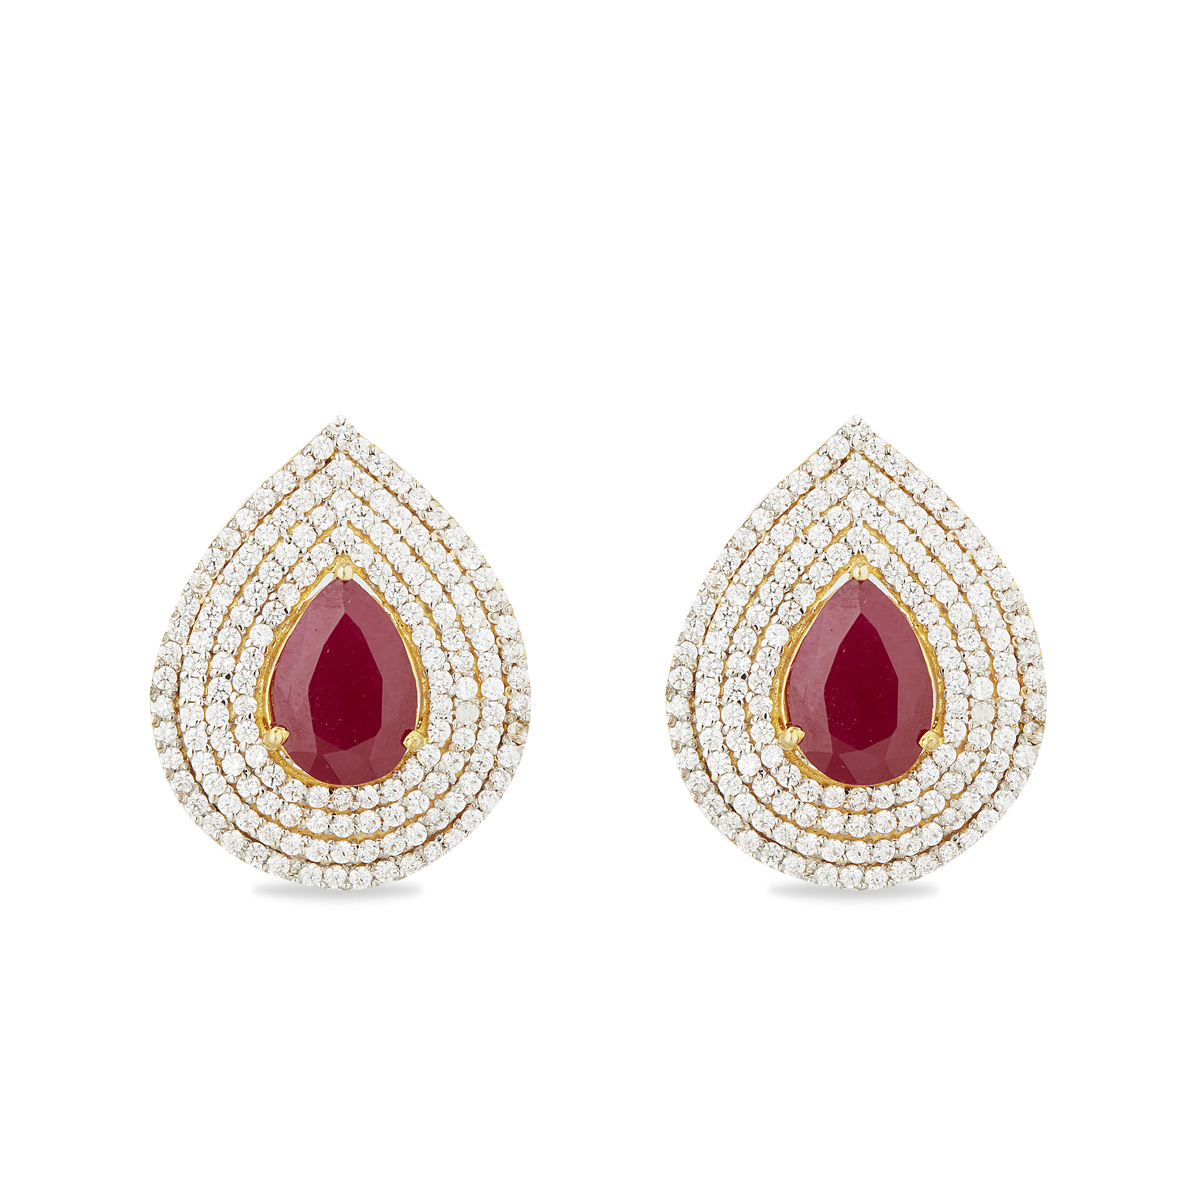 The Wardine Stud Earrings